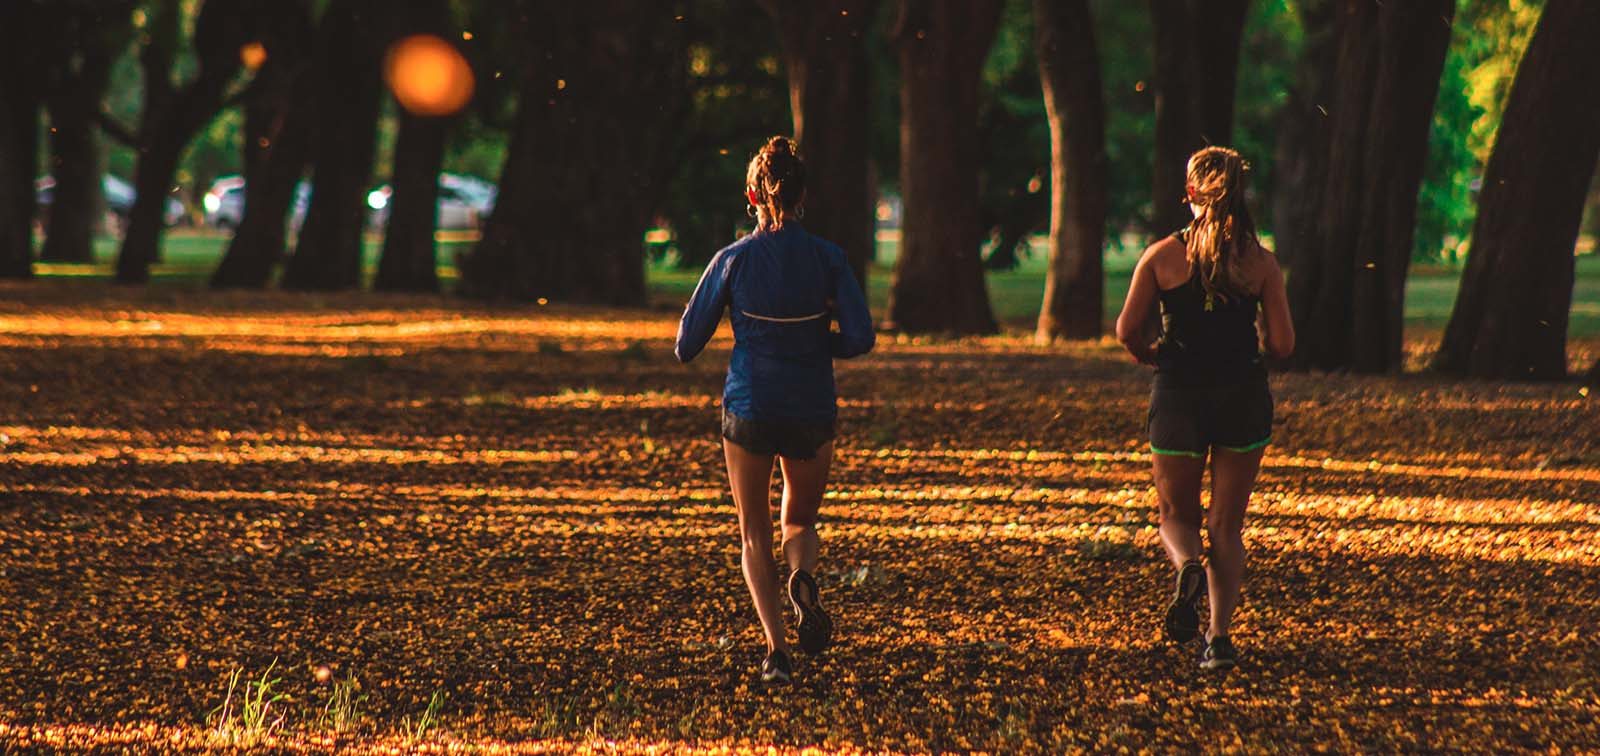 Physical Activity in the Morning Could Be Most Beneficial Against Cancer